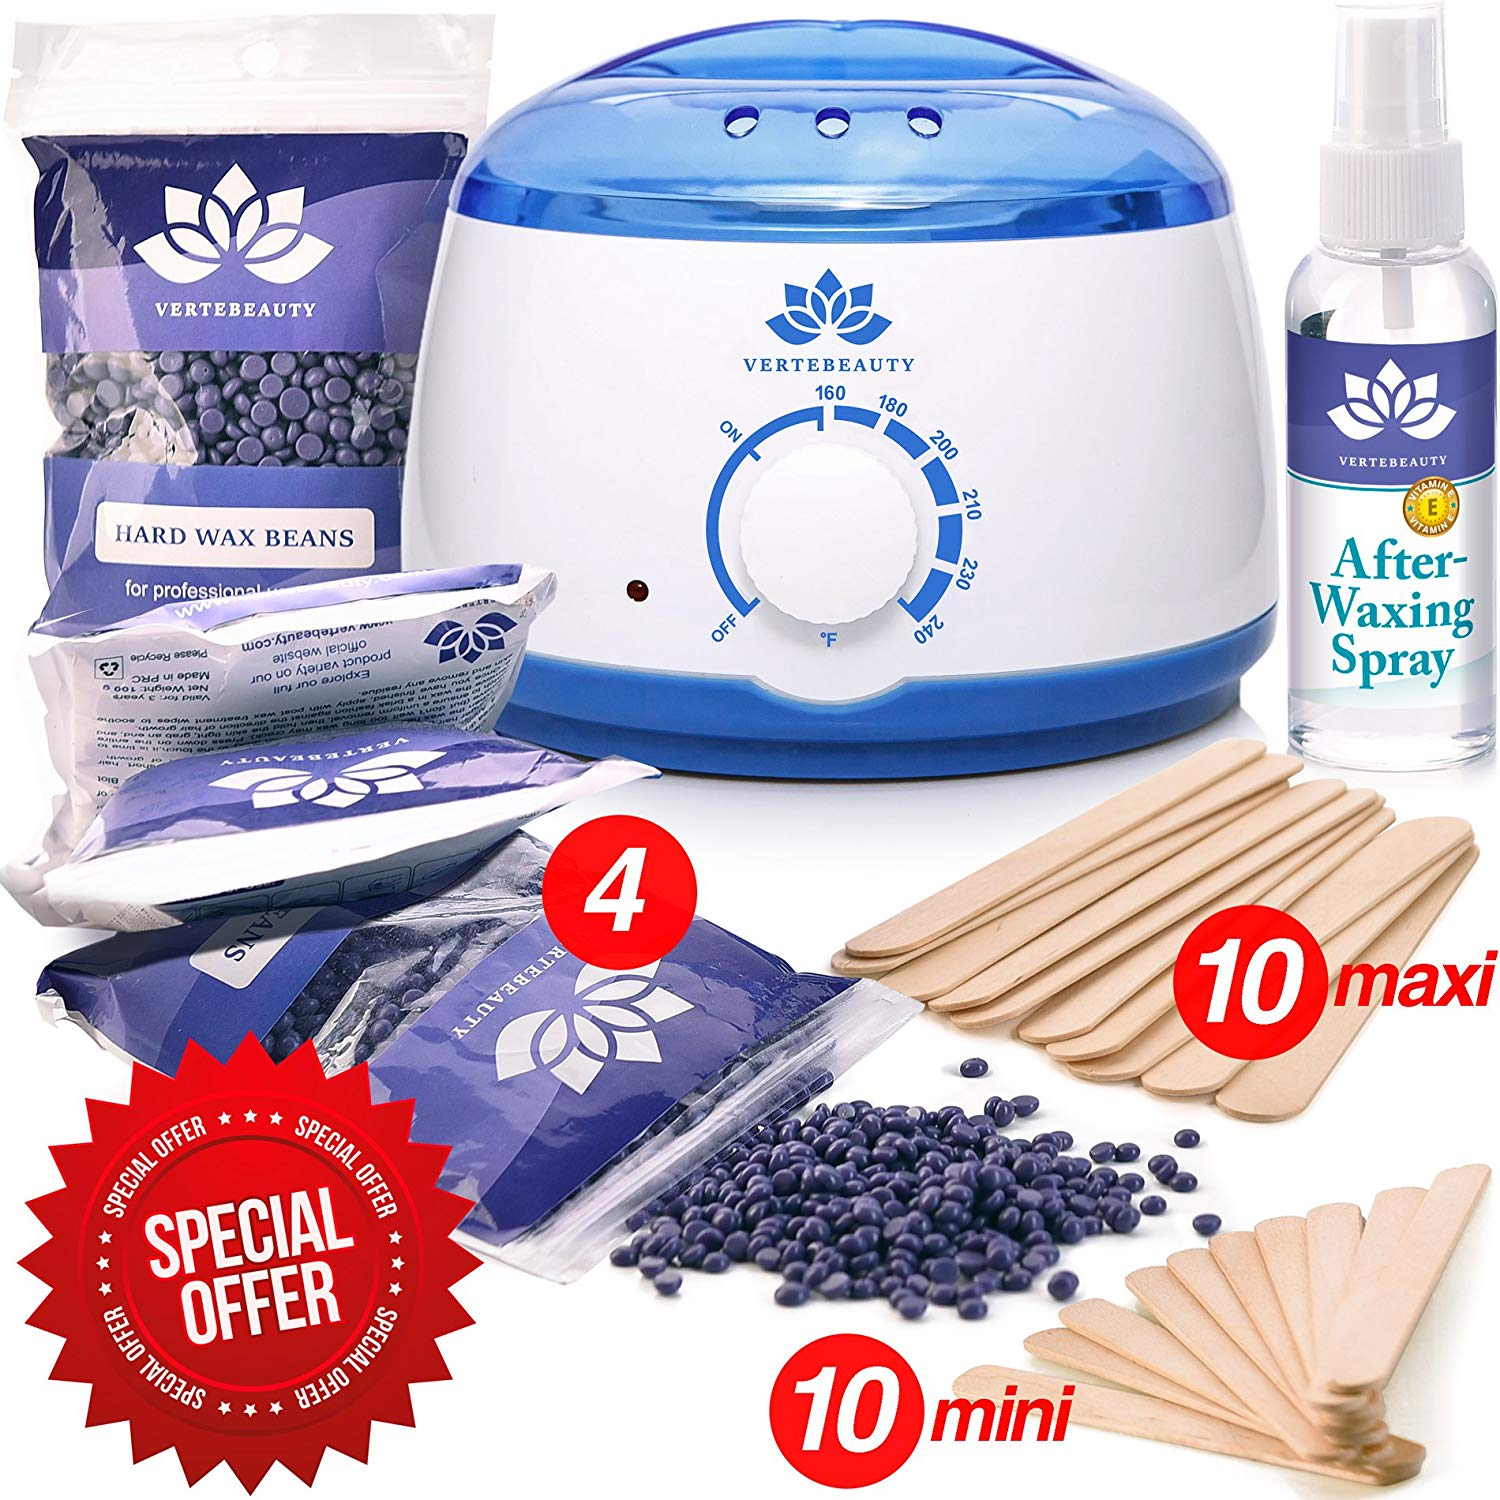 Cheap Eyebrow Waxing Kit Find Eyebrow Waxing Kit Deals On Line At